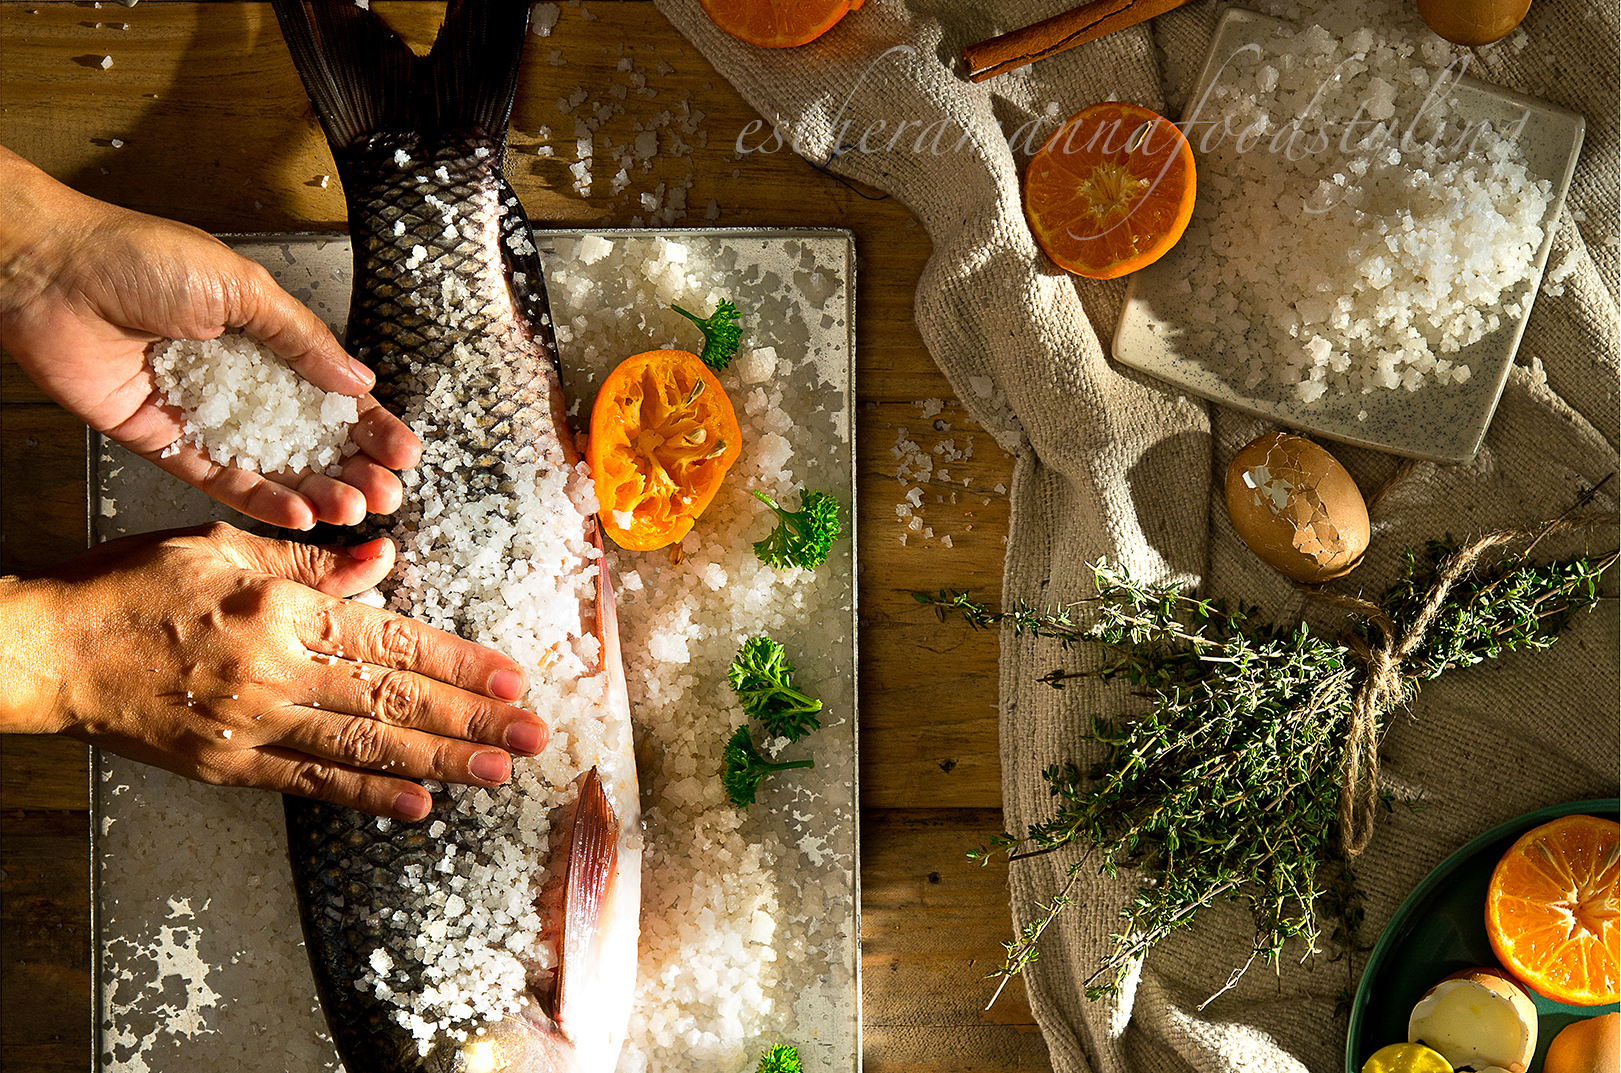 Fish preparation for supper.Lifestyle image for an editorial magazine.